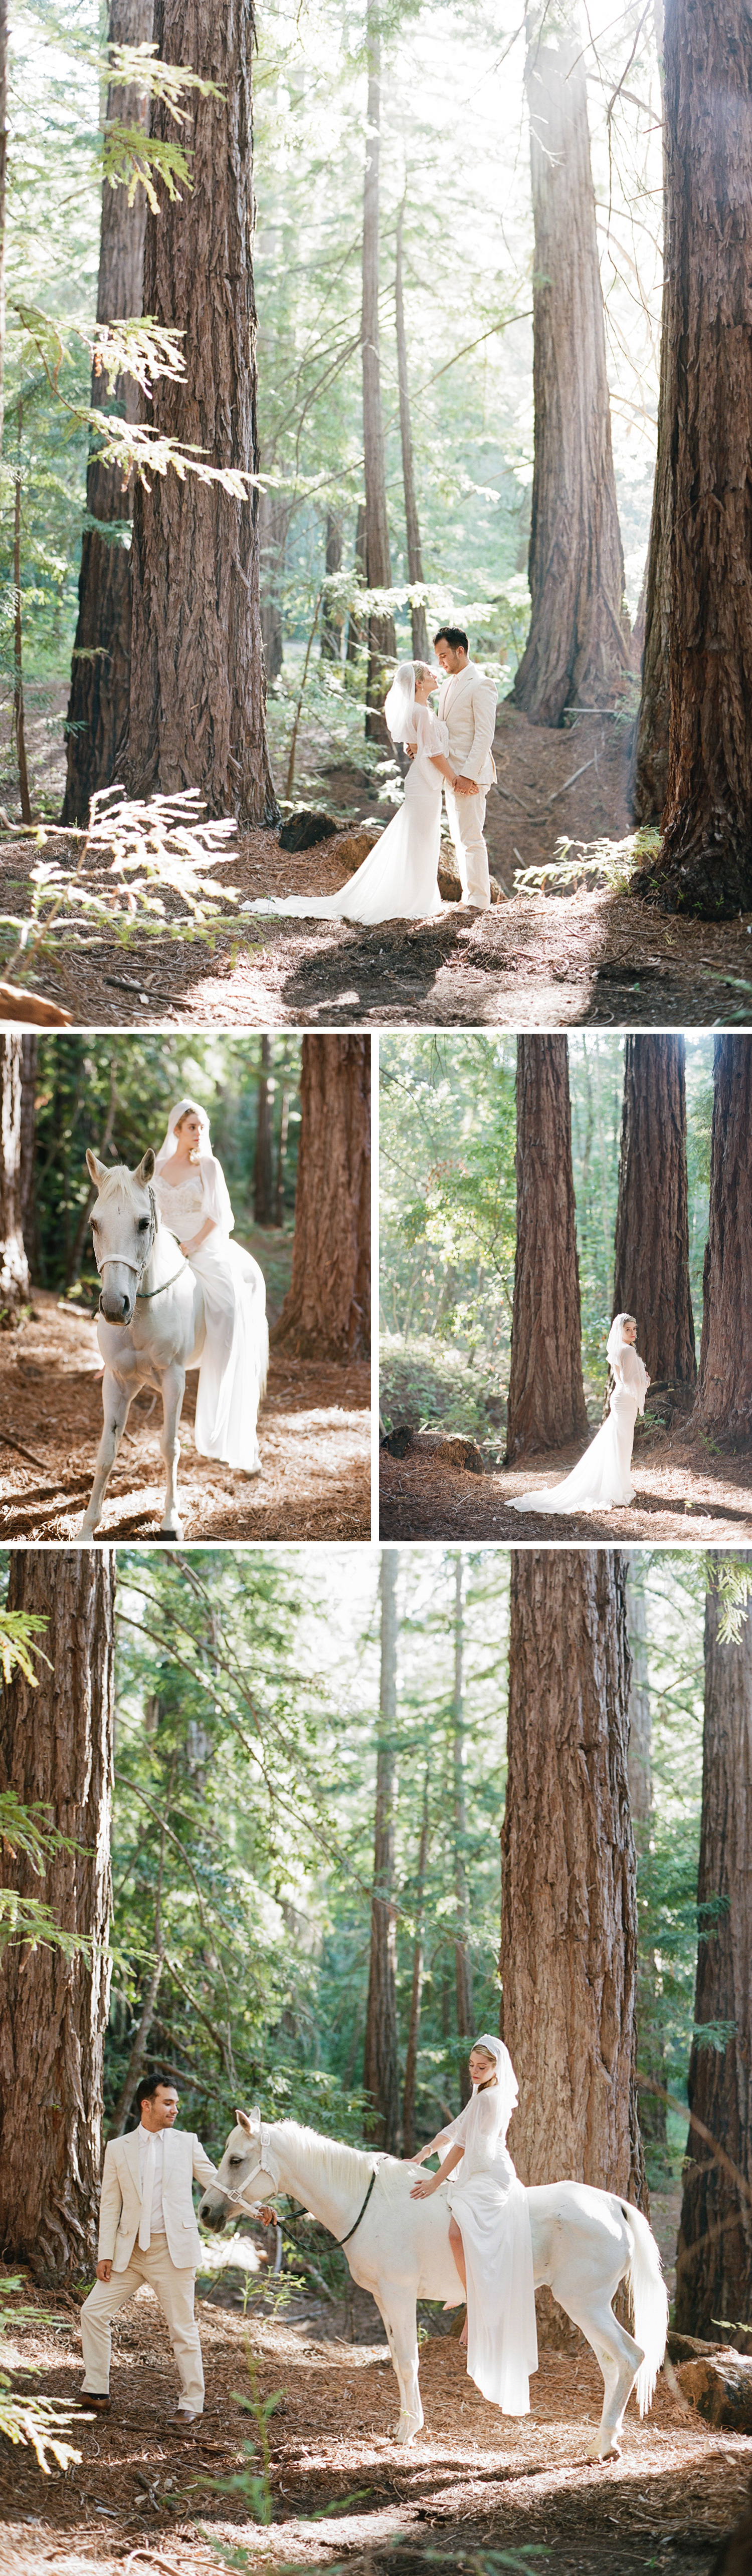 The bride and groom during a romantic couple session in the redwood forest; the bride sits bareback atop a white horse; photos by Sylvie Gil